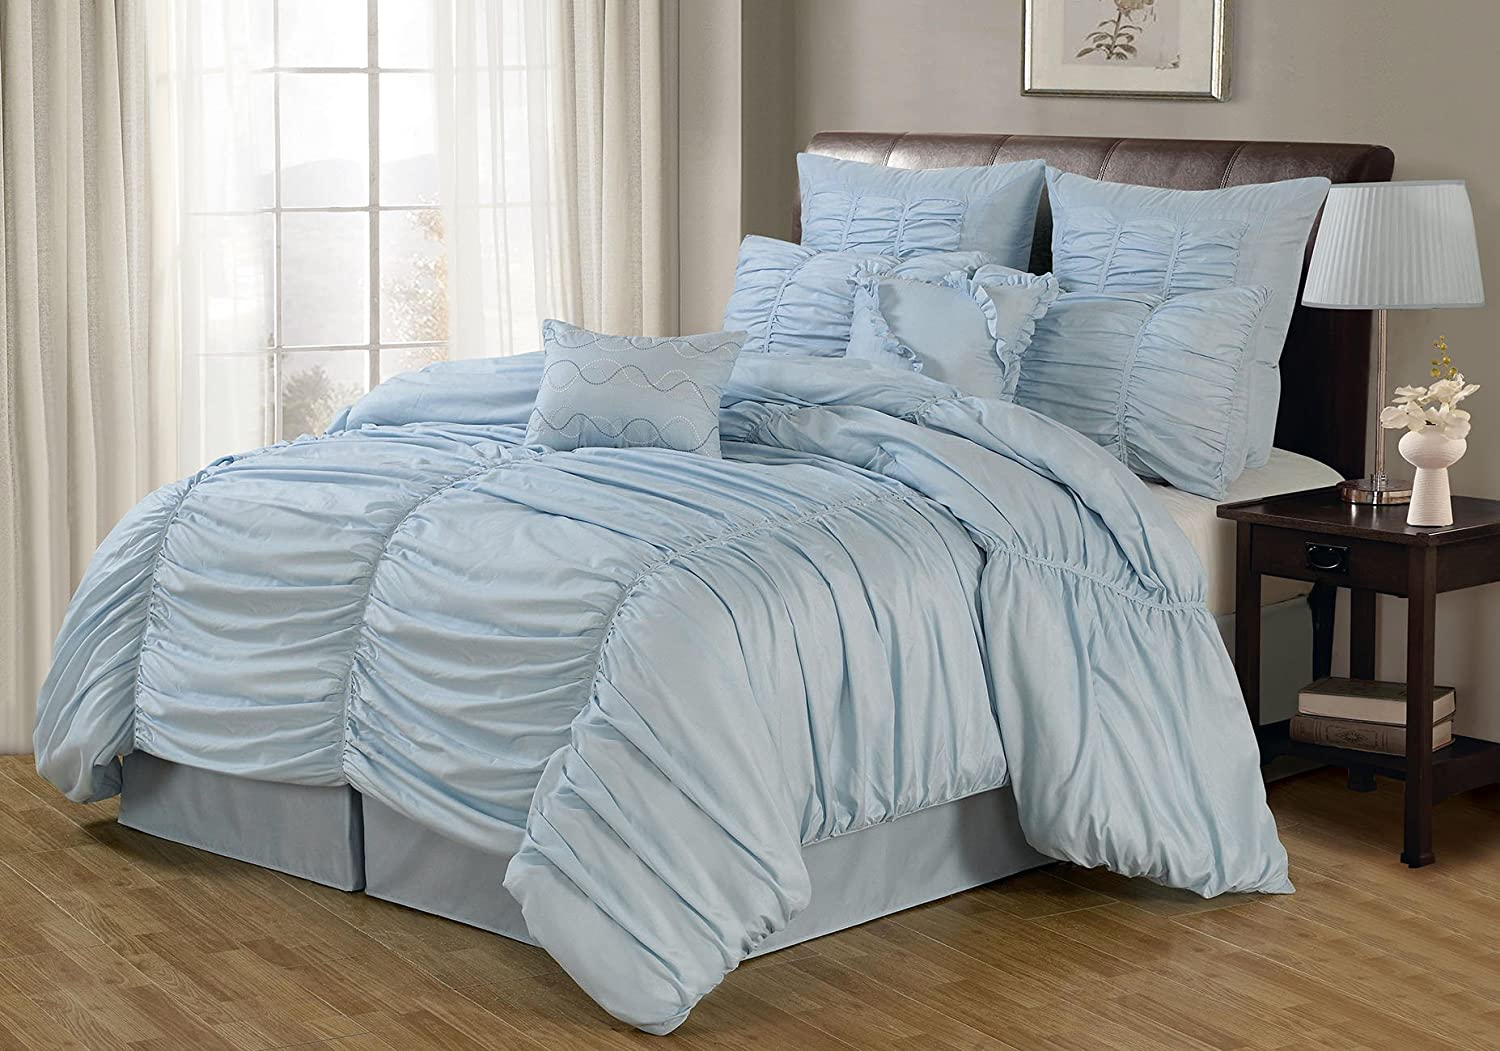 The Dragon House Pale Light Blue Comforter